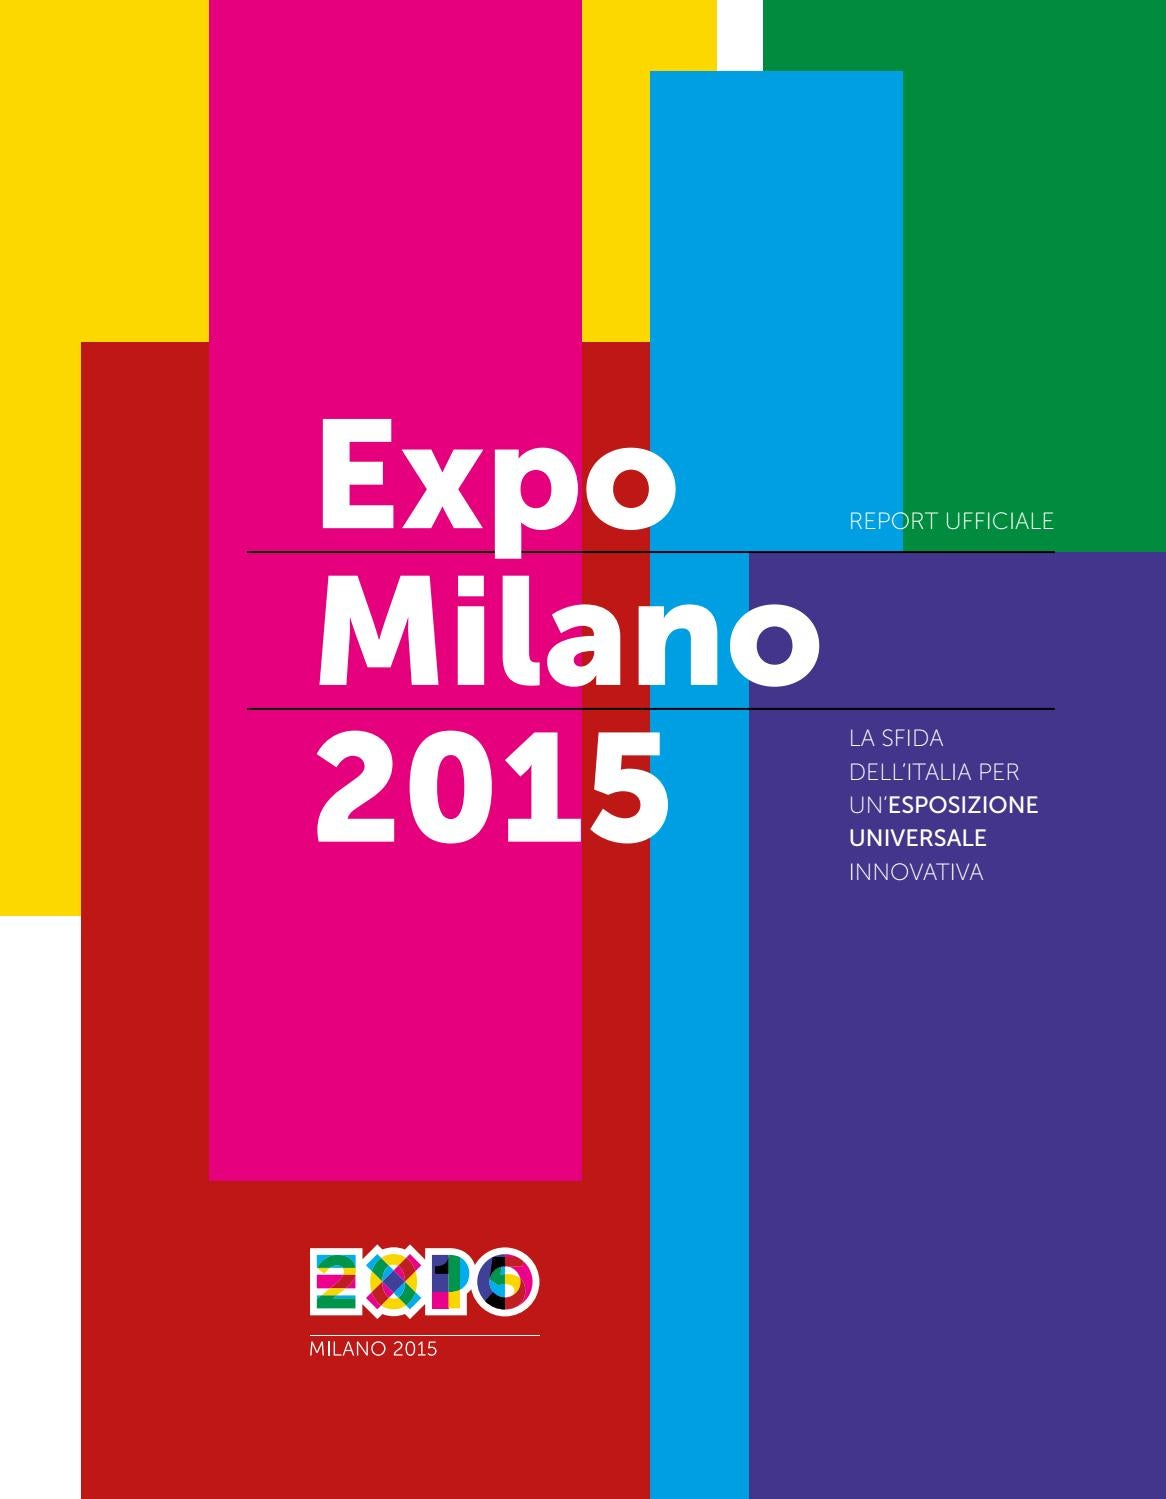 Expo Milano 2015 – Report ufficiale by Expo Milano 2015 - issuu 2a80b1ff7ad